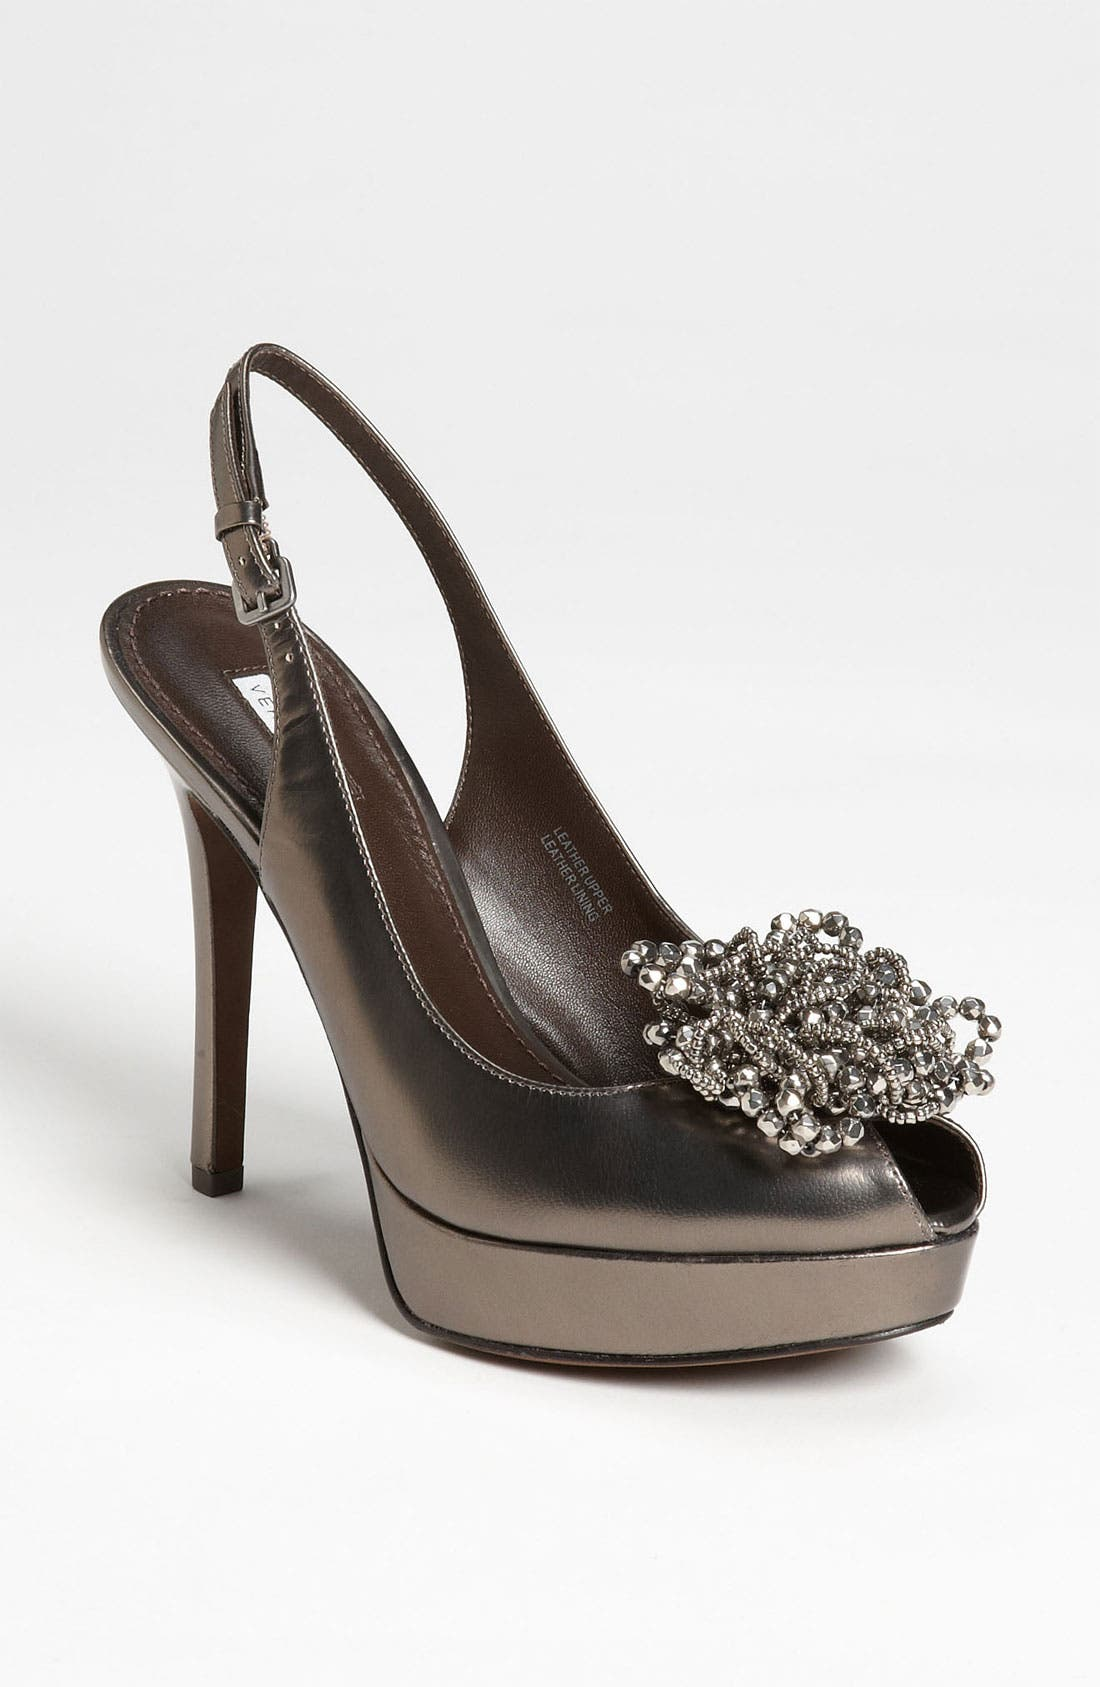 Main Image - Vera Wang Footwear 'Melody' Pump